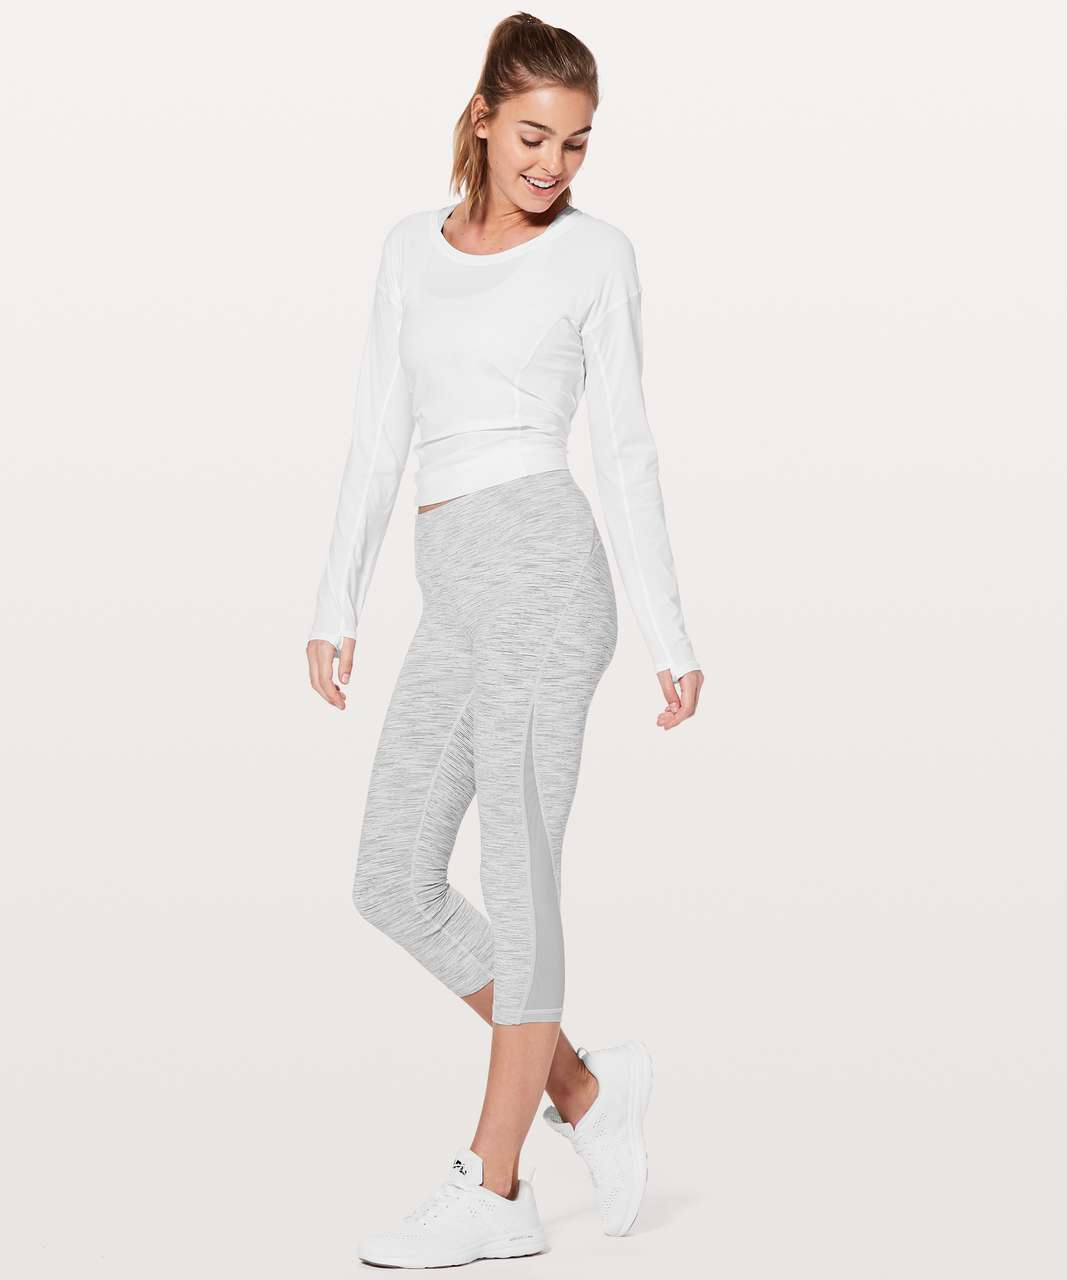 "Lululemon Train Times Crop *21"" - Wee Are From Space Ice Grey Alpine White"